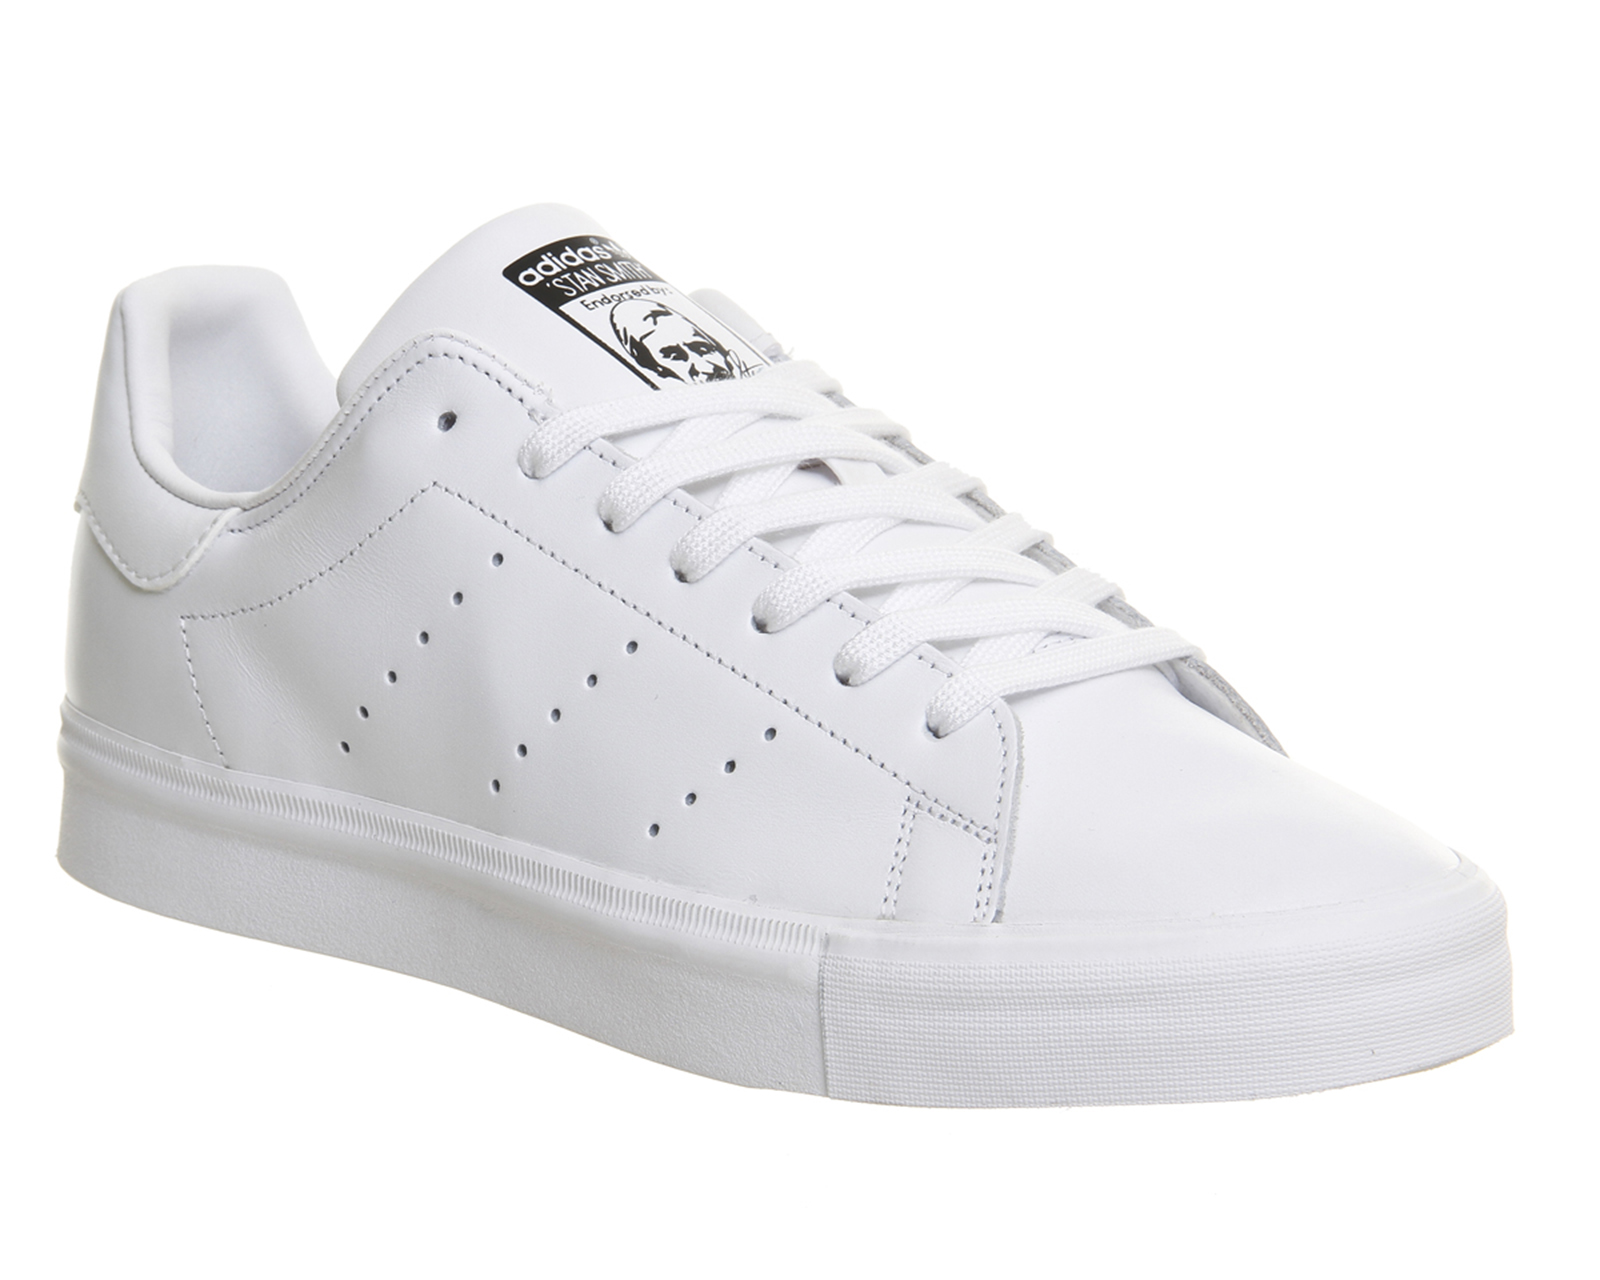 Mens-Adidas-Stan-Smith-Vulc-WHITE-MONO-Trainers-